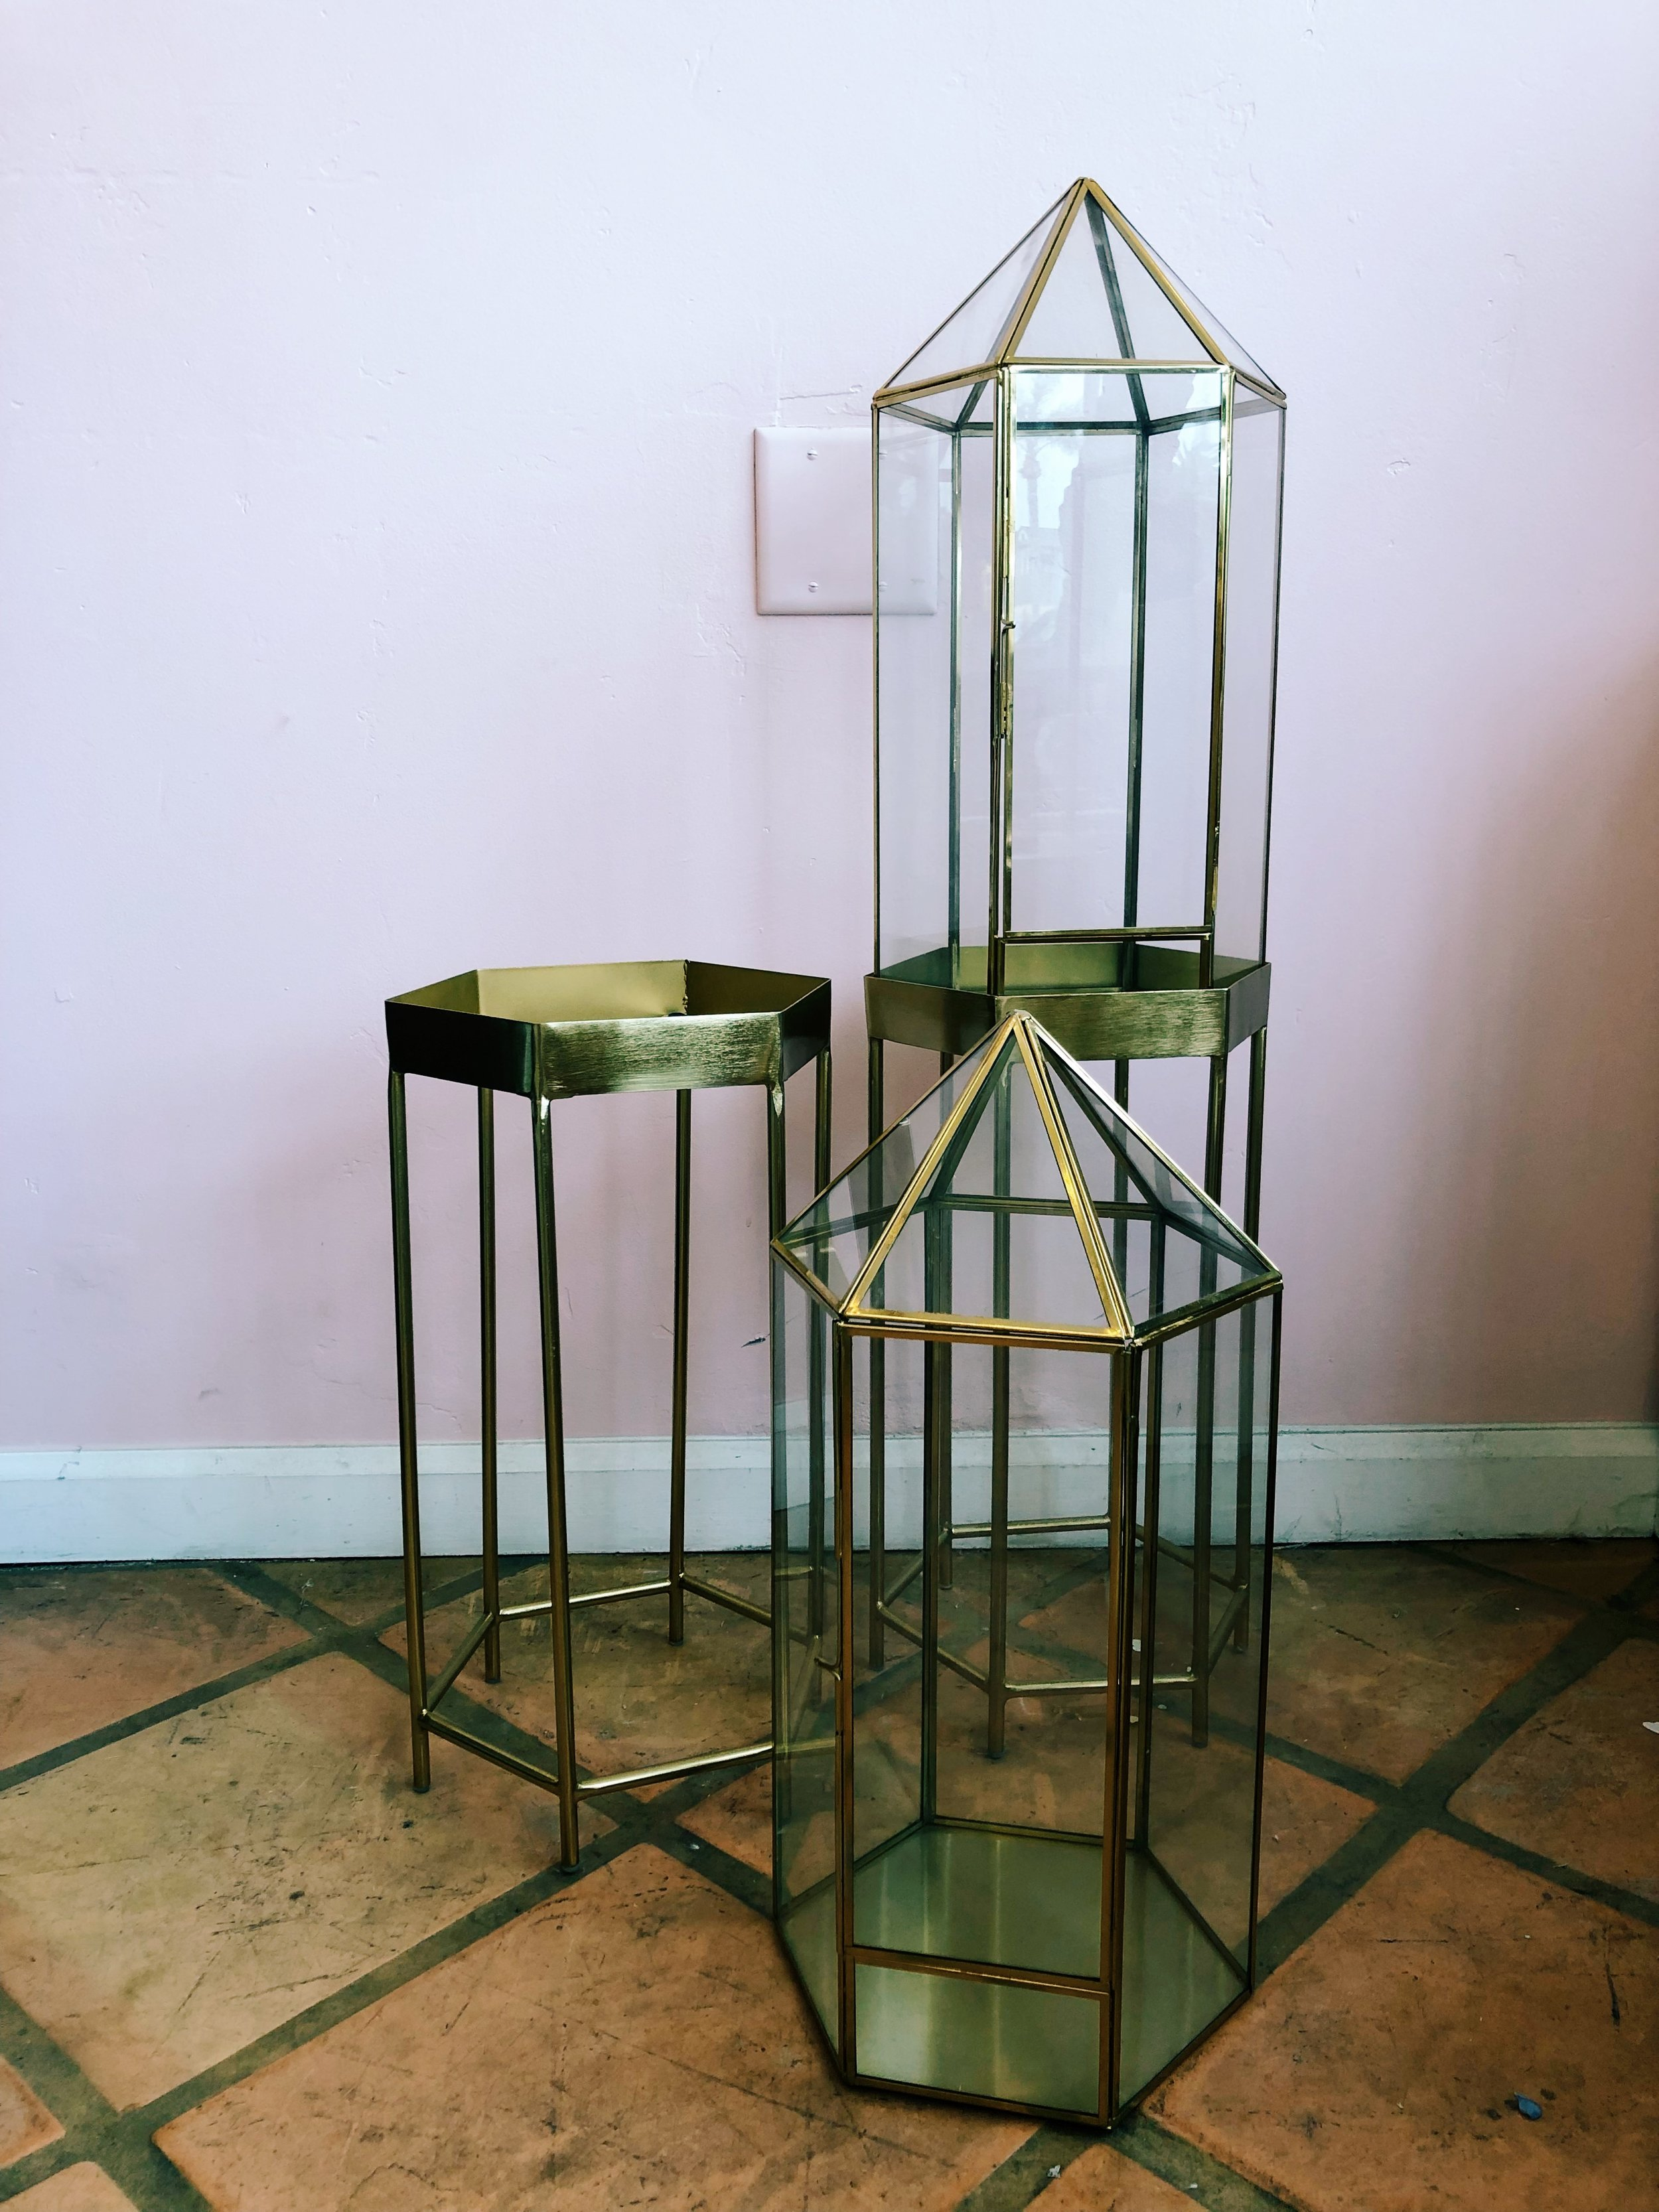 "Gold Geometric Lanterns - Gold Geometric Lanterns with stand. Swing door on lantern to add candles/floral decor and can be removed from stand for easy repurposing. Two available. Together 37""h x 10""w x 10""d, stands only 10"" x 10"" x 18""."